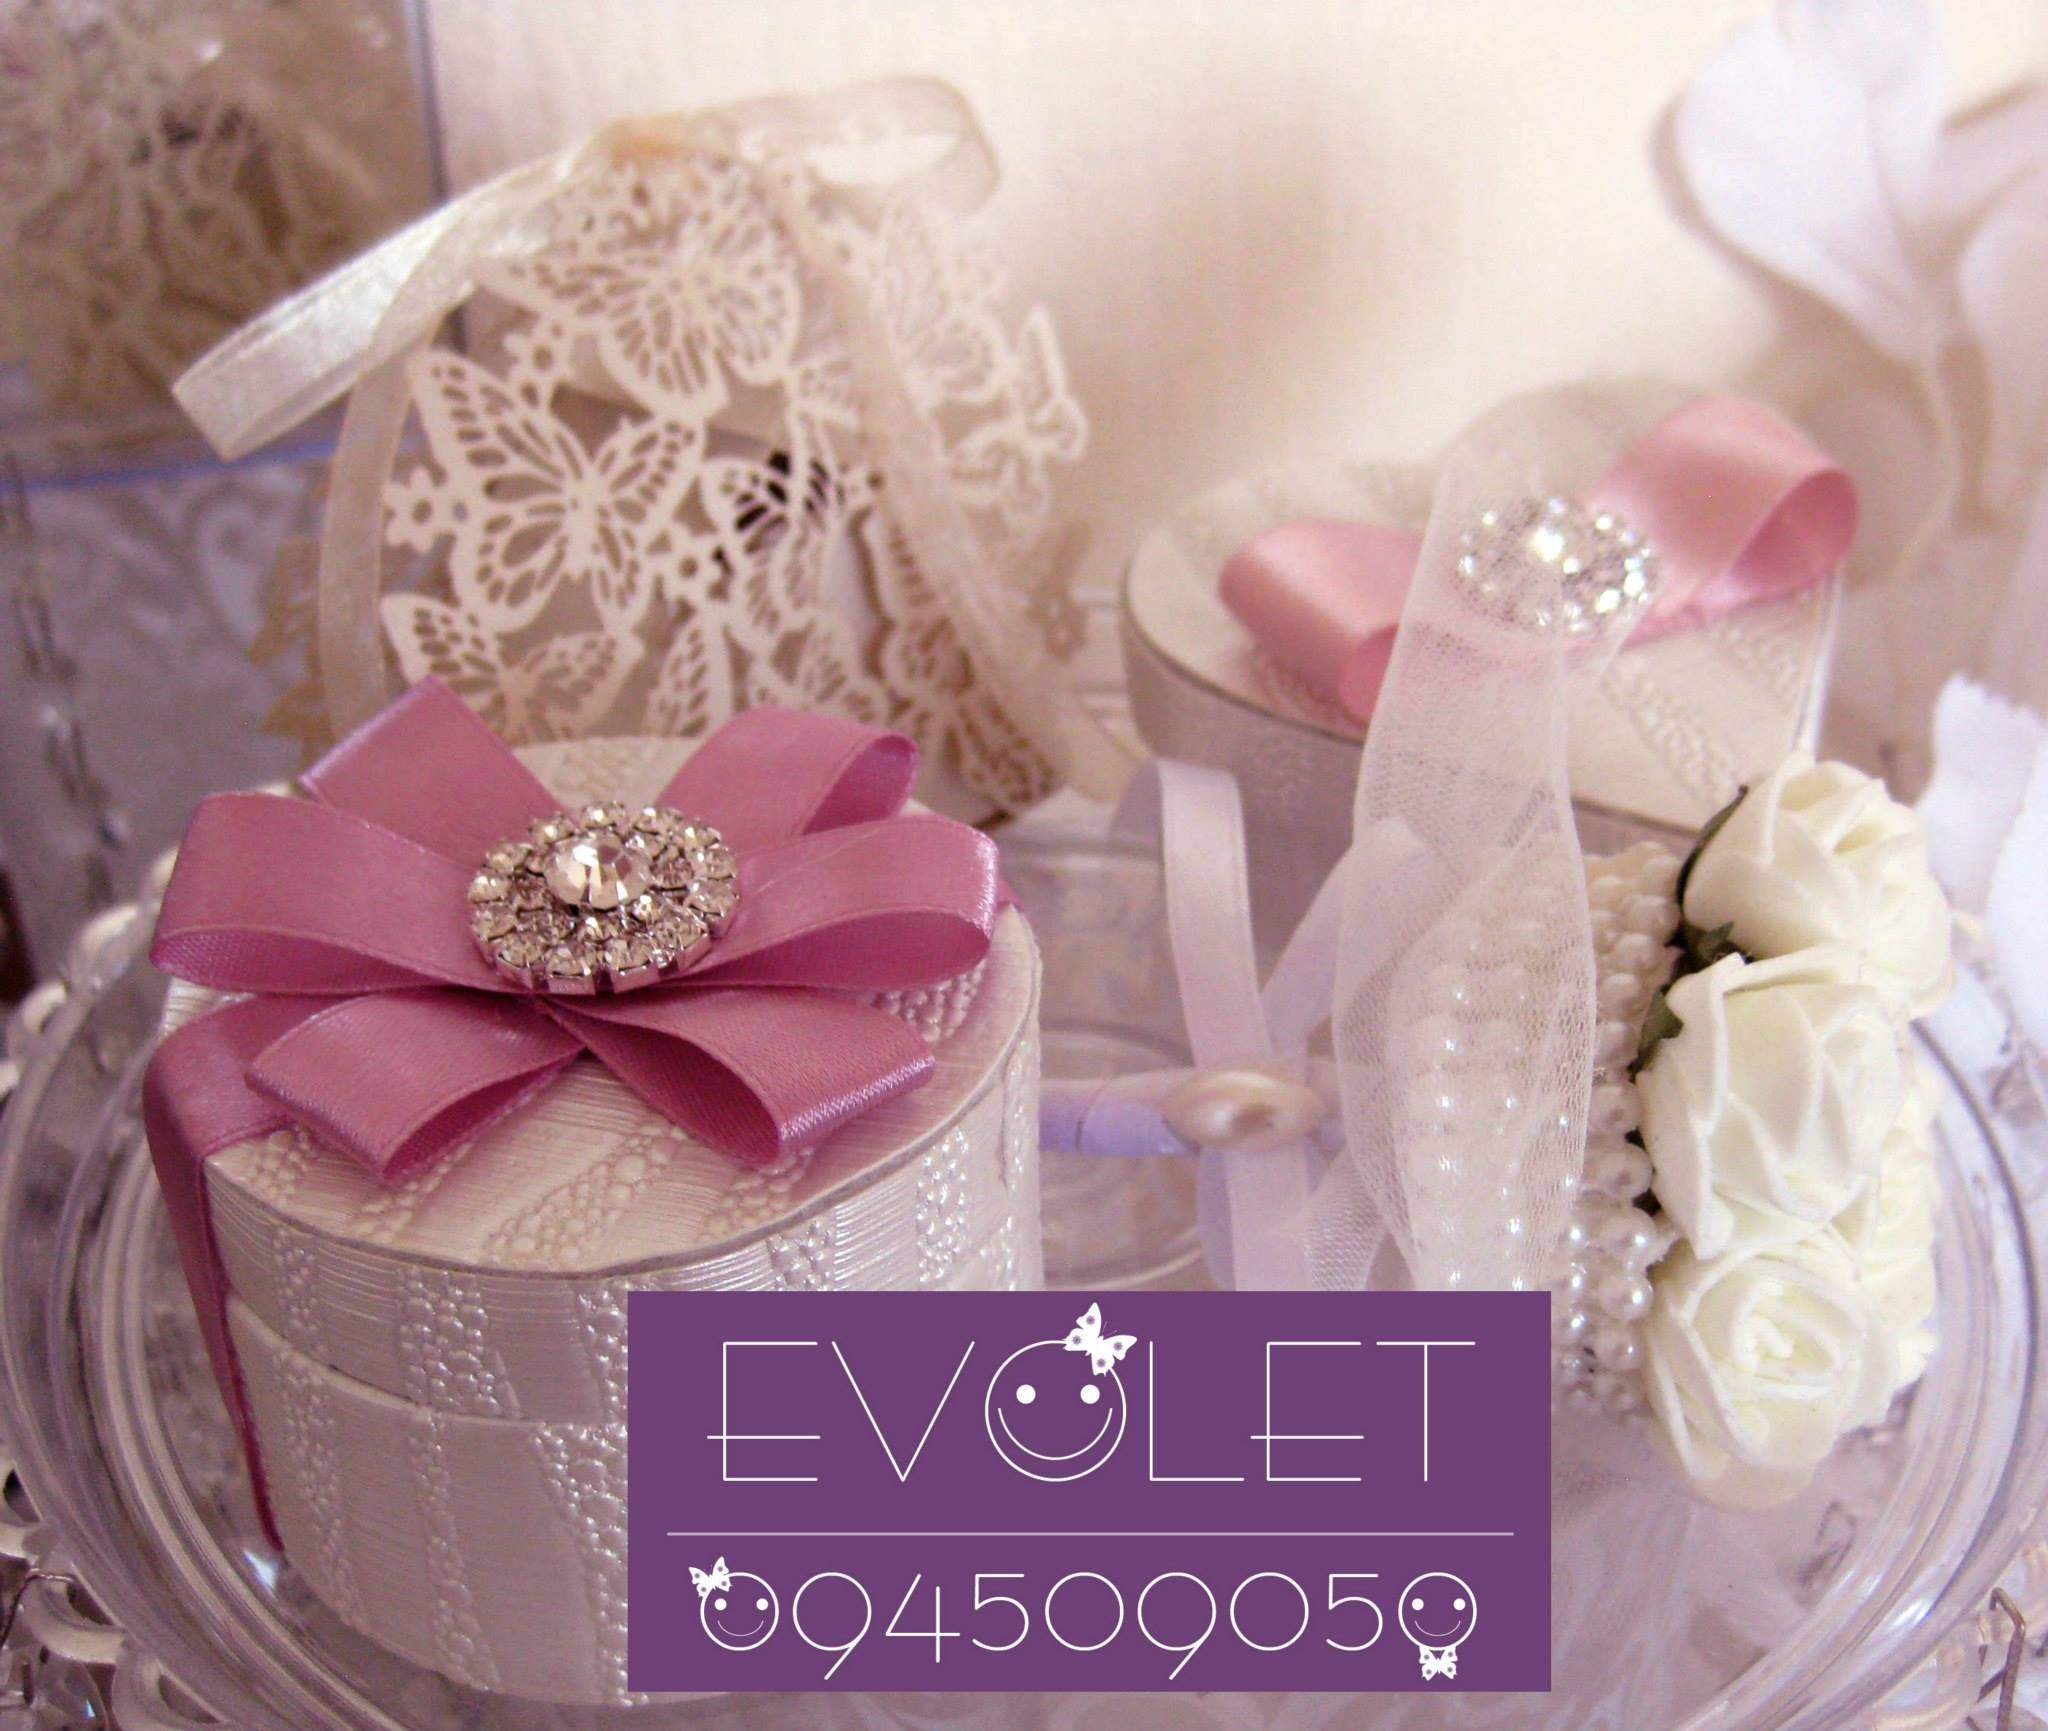 Wedding Favor box Wedding Candy Box. EVOLET EVENT & WEDDING CENTER + ...